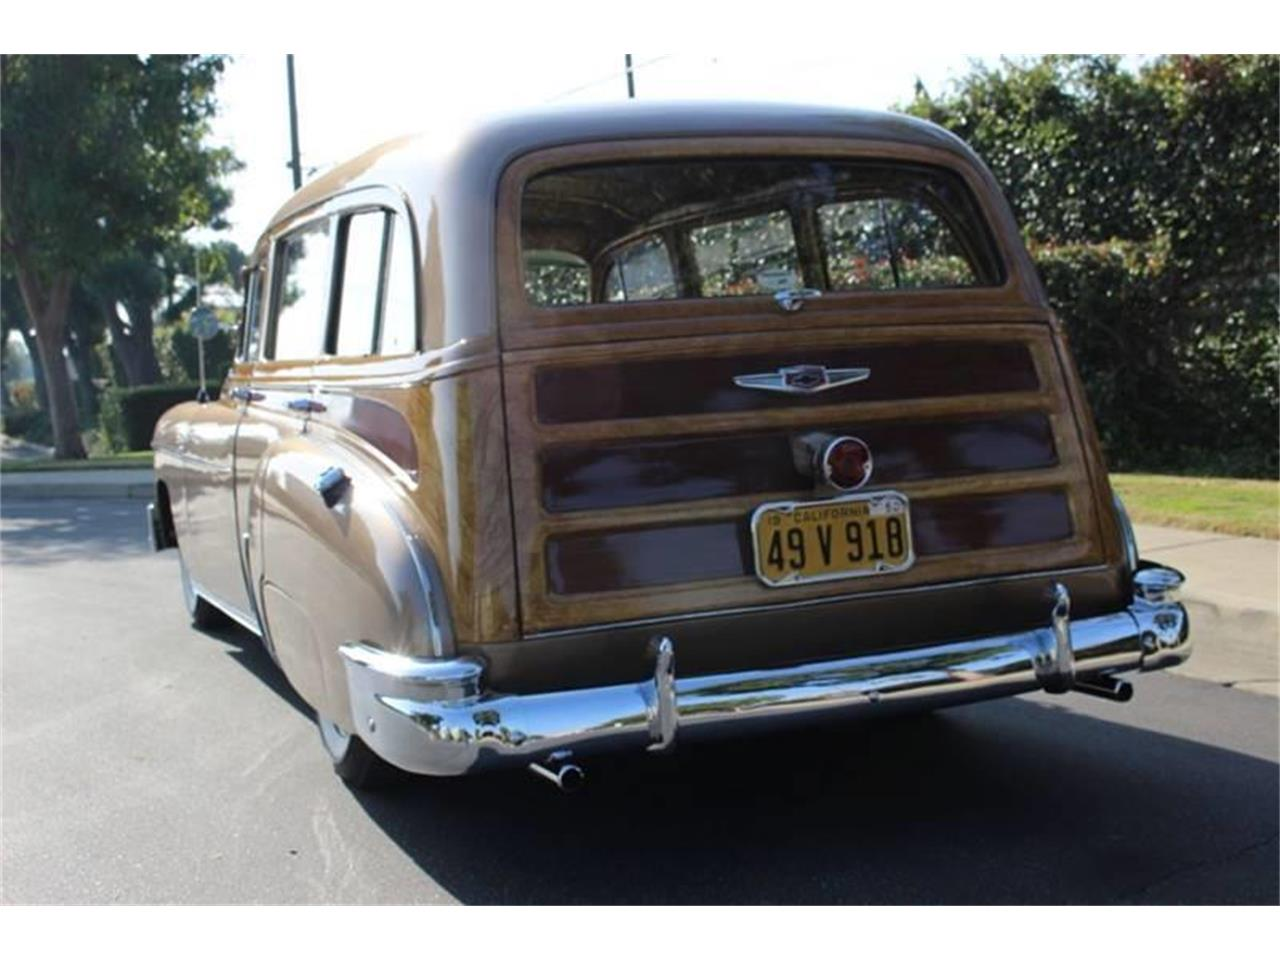 1950 Chevrolet Styleline Deluxe for sale in La Verne, CA – photo 6